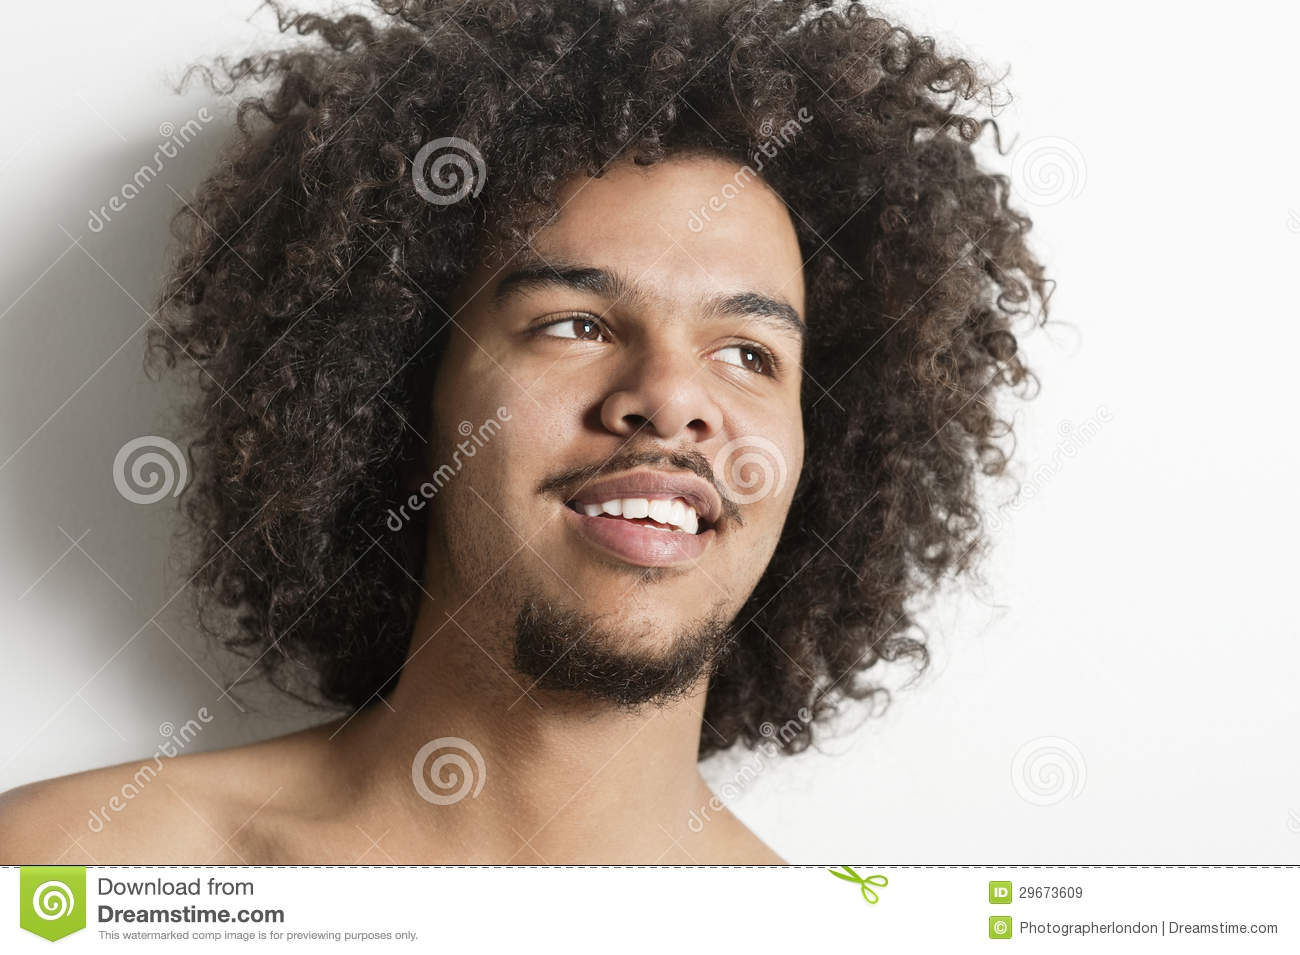 Close Up Of A Happy Young Man With Curly Hair Looking Away